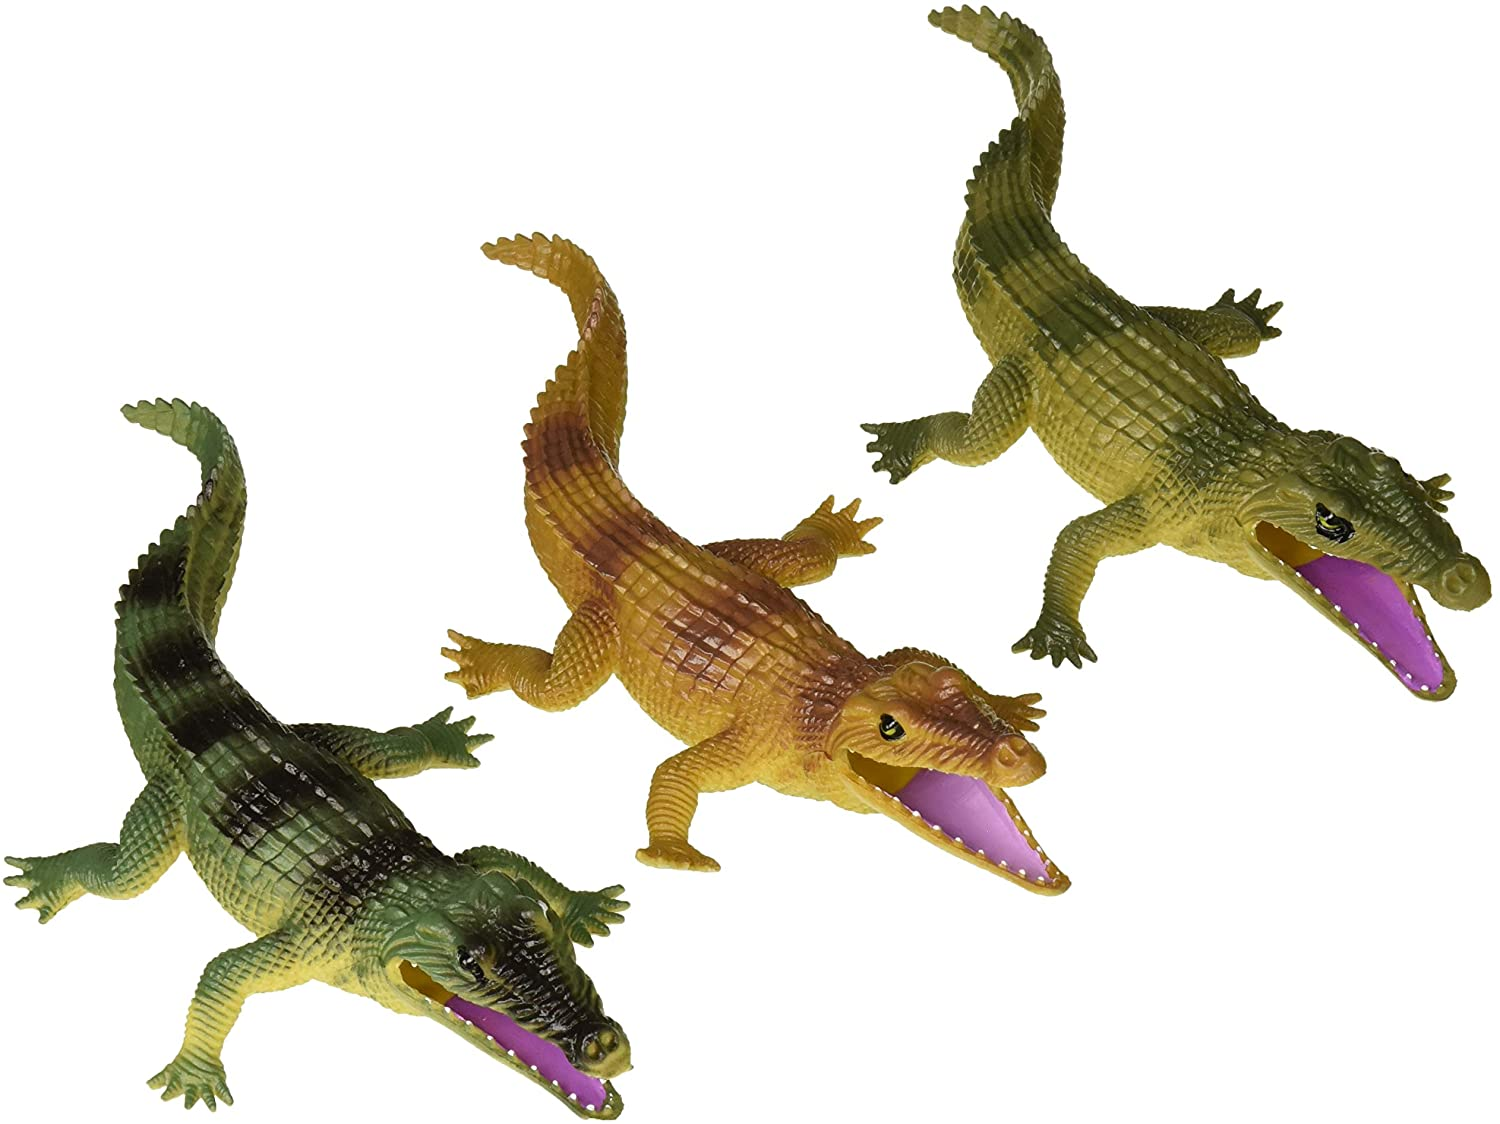 Wild Republic Crocodile Toys, Kids Gifts, Crocodile Party, Australian Toys, Croc Figure, Polybag, 6Piece, Green